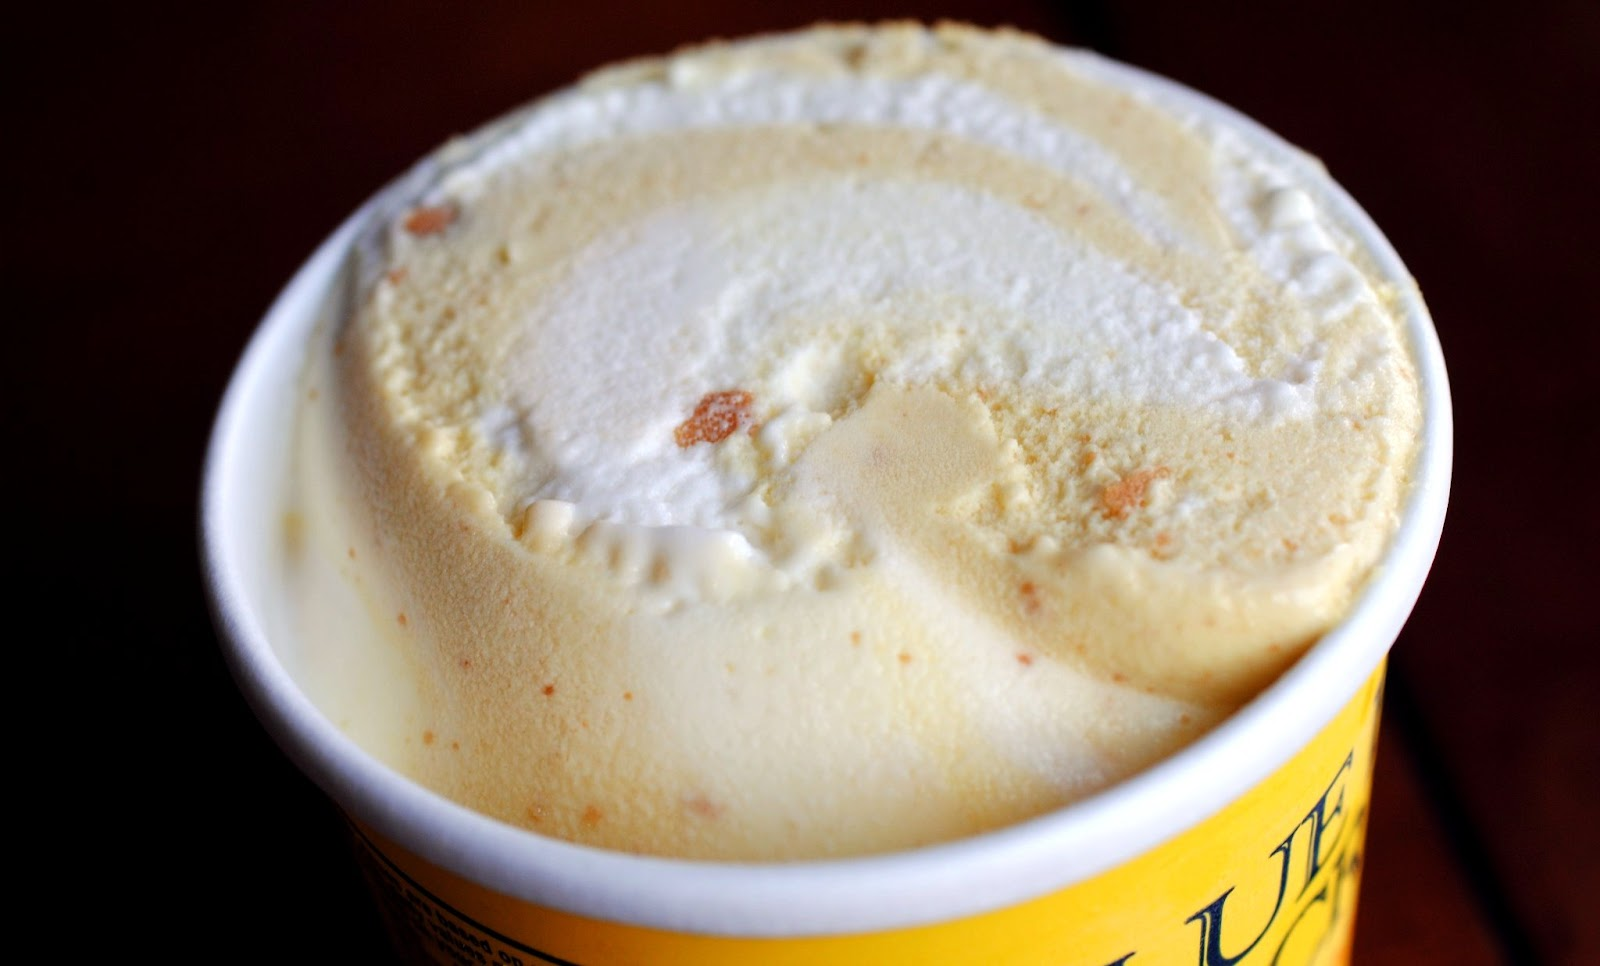 The Ice Cream Informant: REVIEW: Blue Bell Banana Pudding